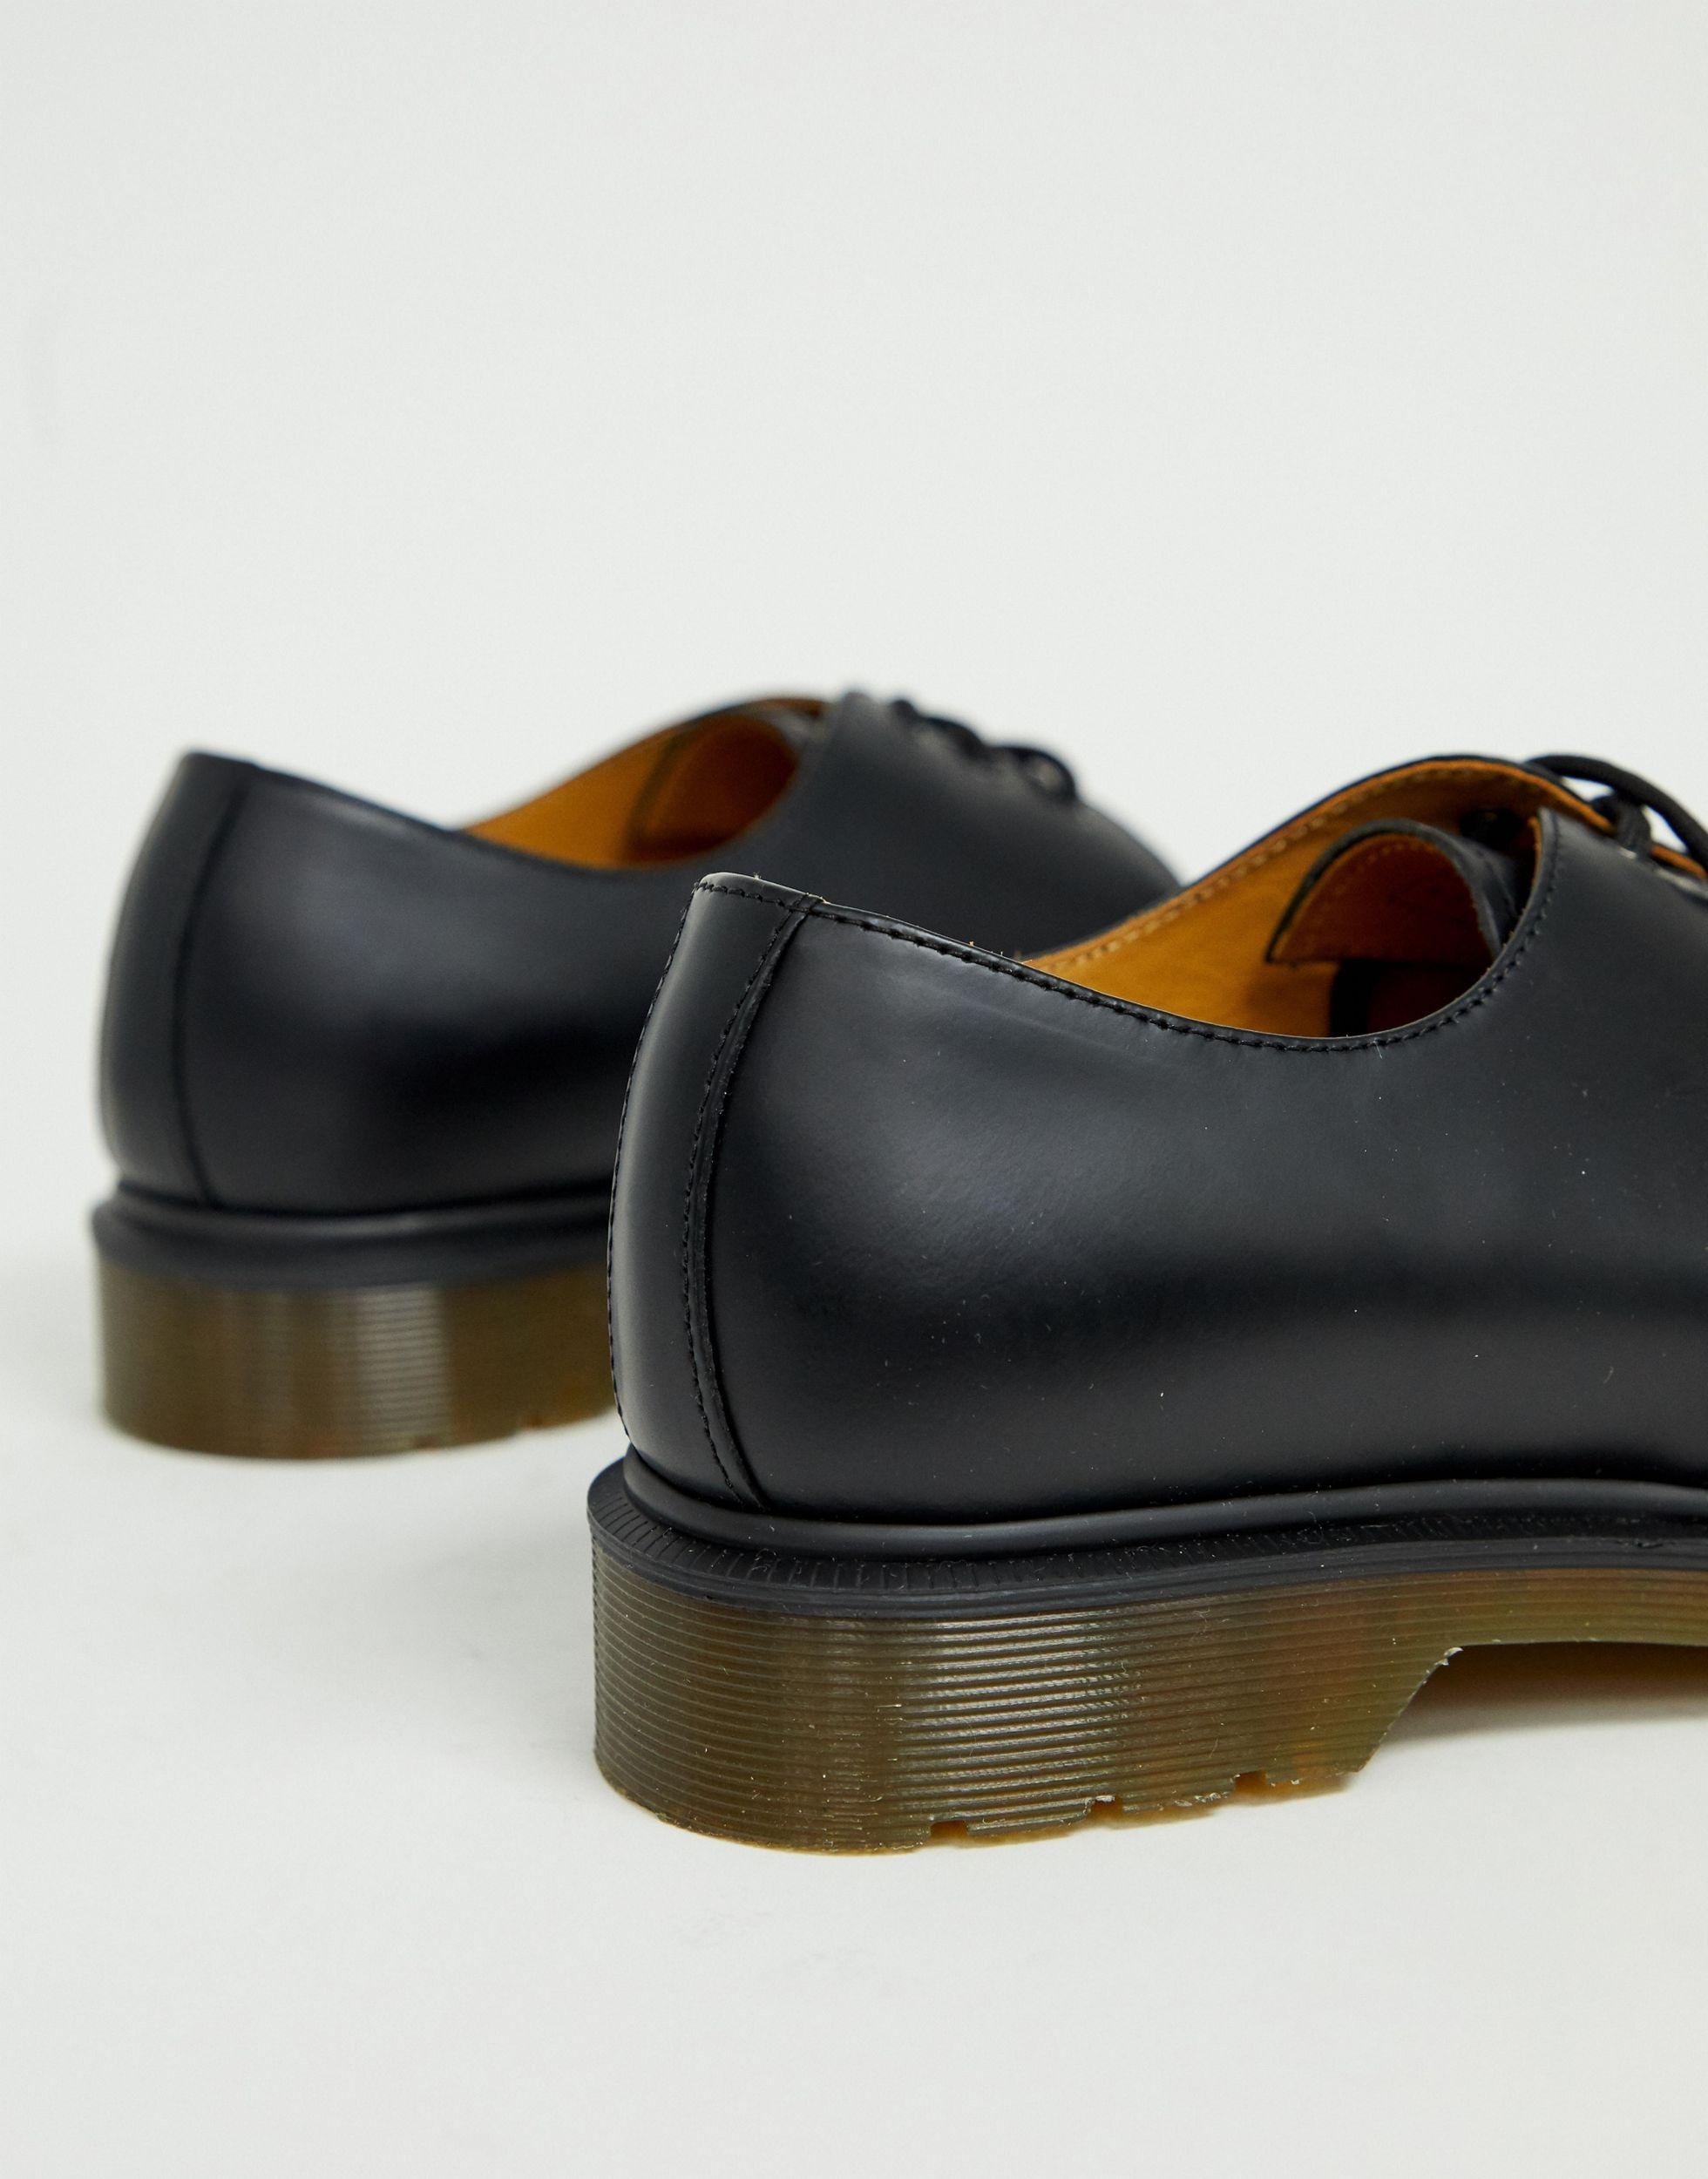 Dr. Martens 1461 Pw 3-eye Shoes in